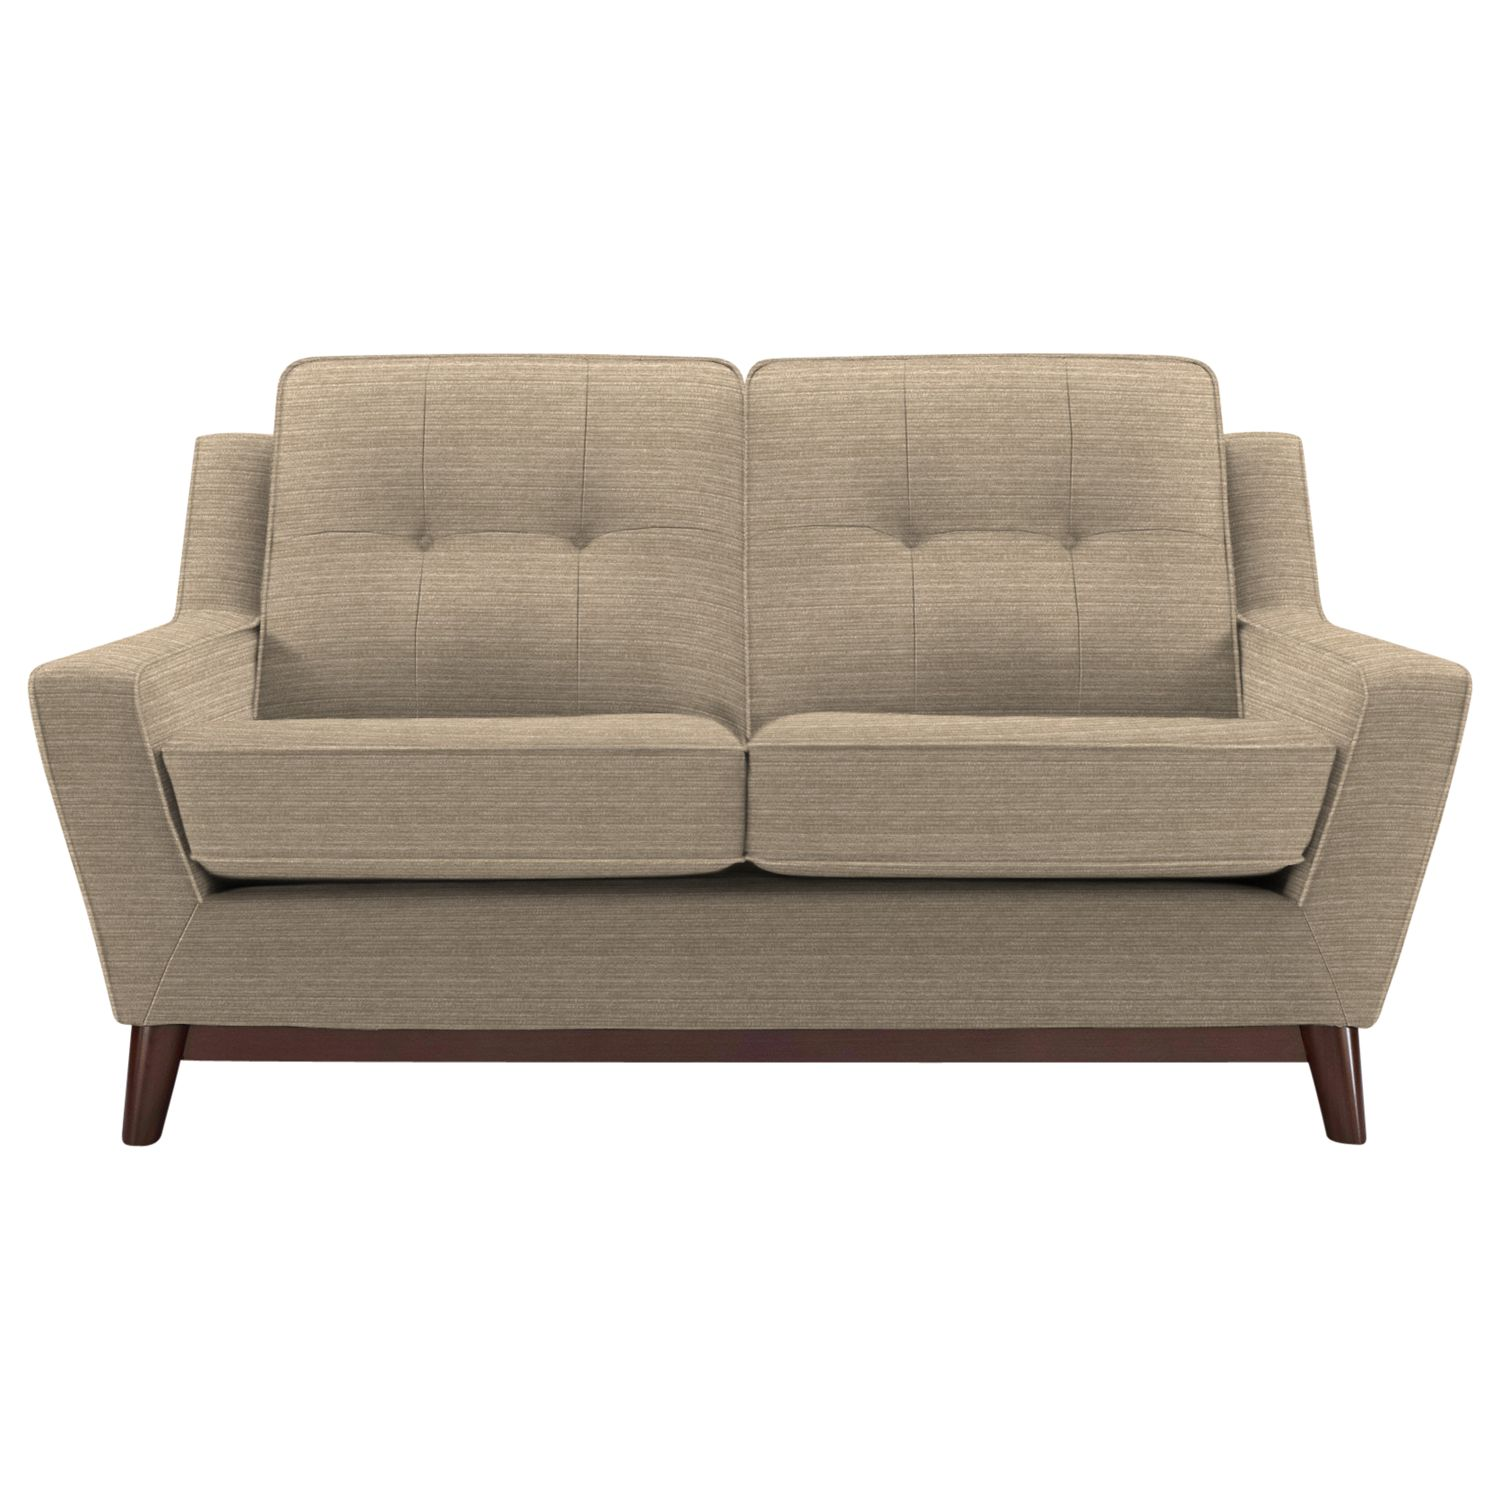 G Plan Vintage The Fifty Three Small Sofa, Streak Mushroom